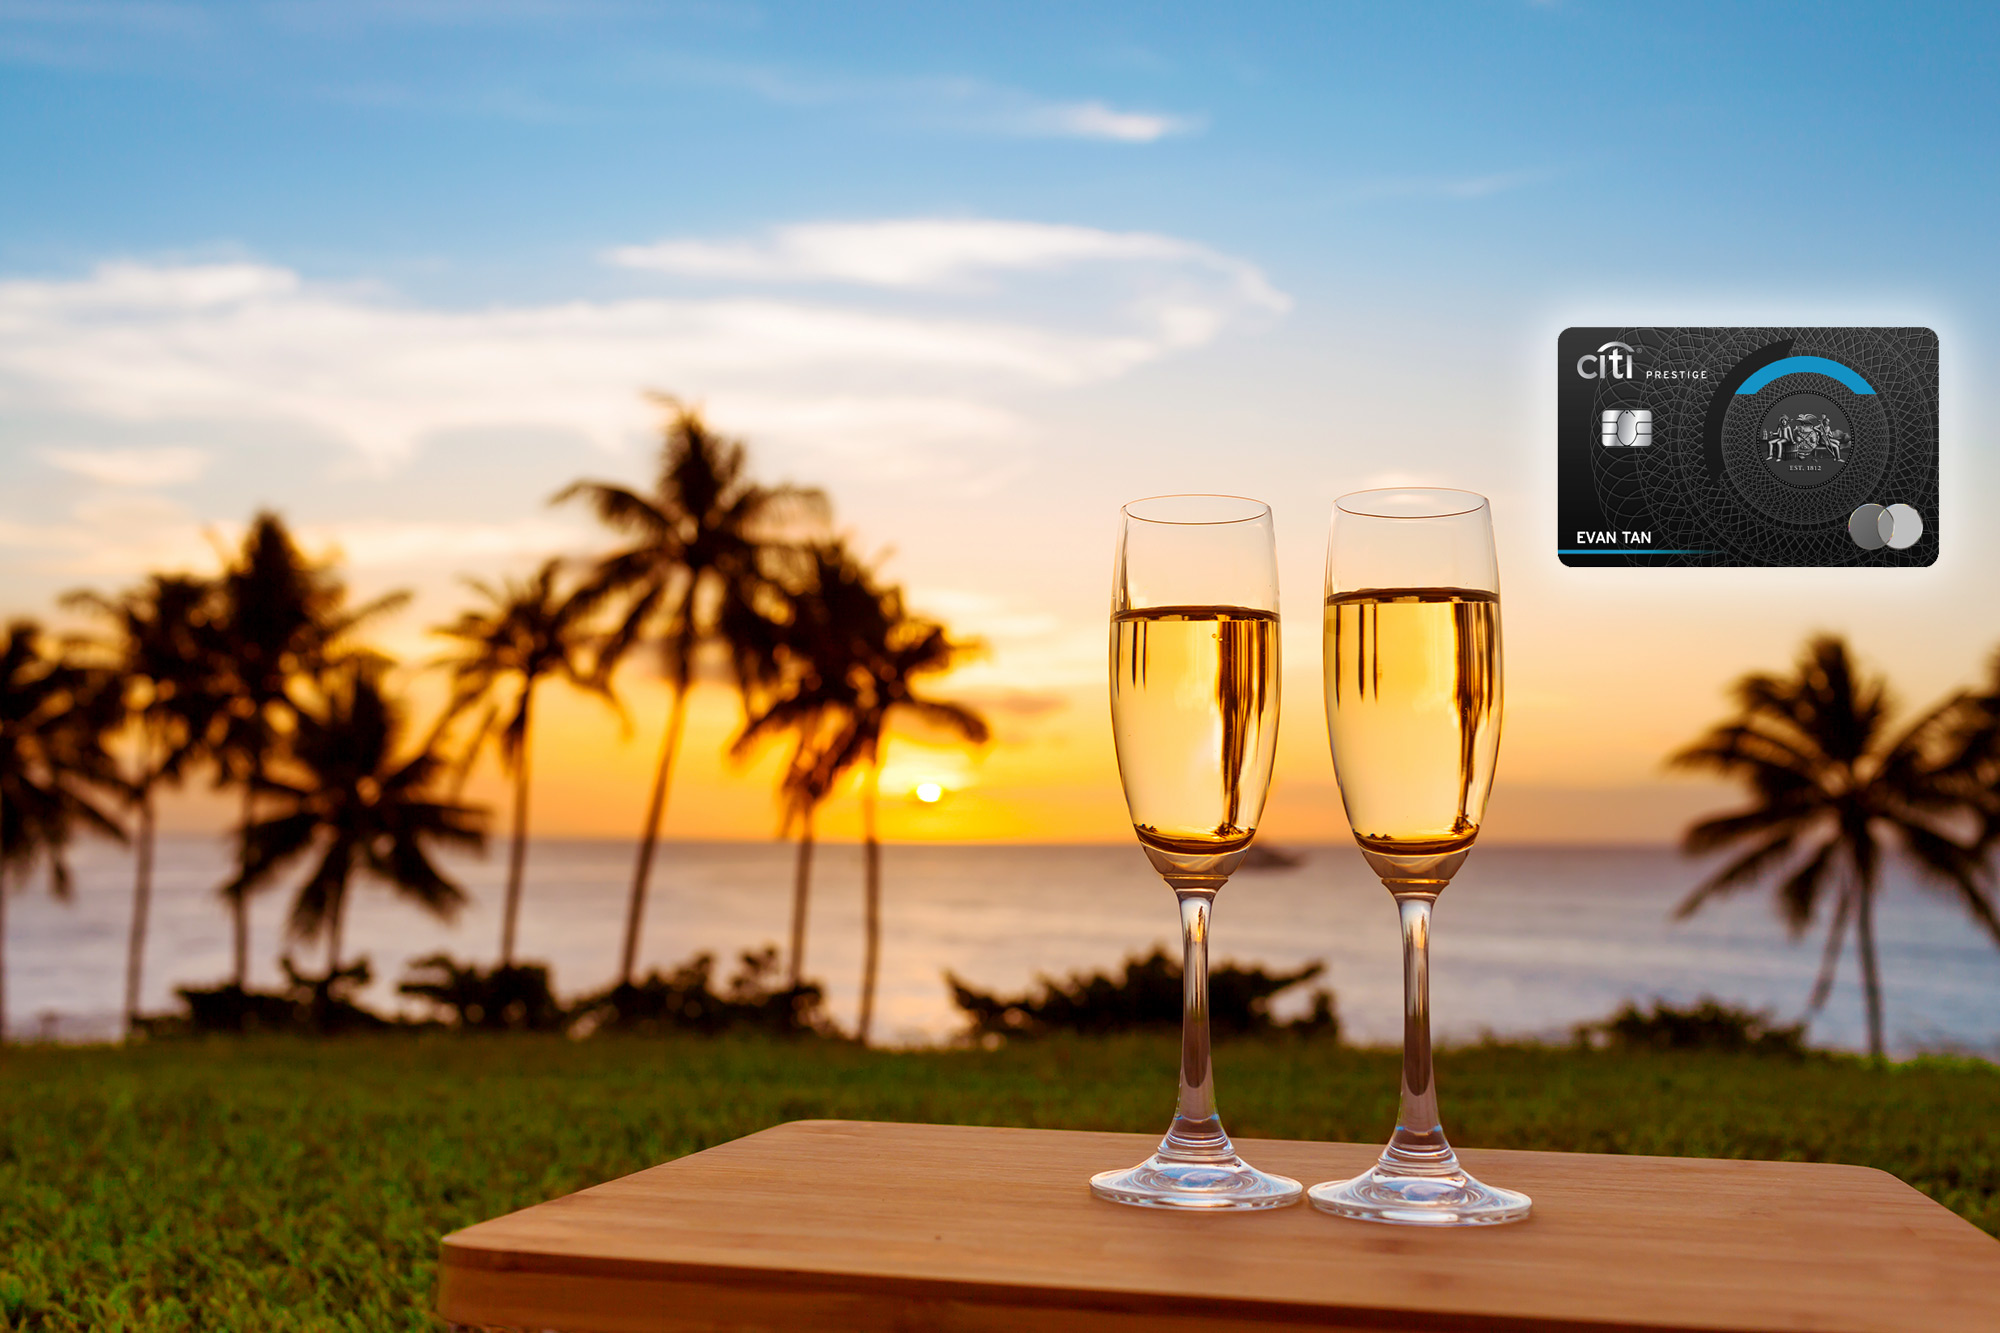 Citi Prestige Promo: Buy miles at just 0.8 cents each